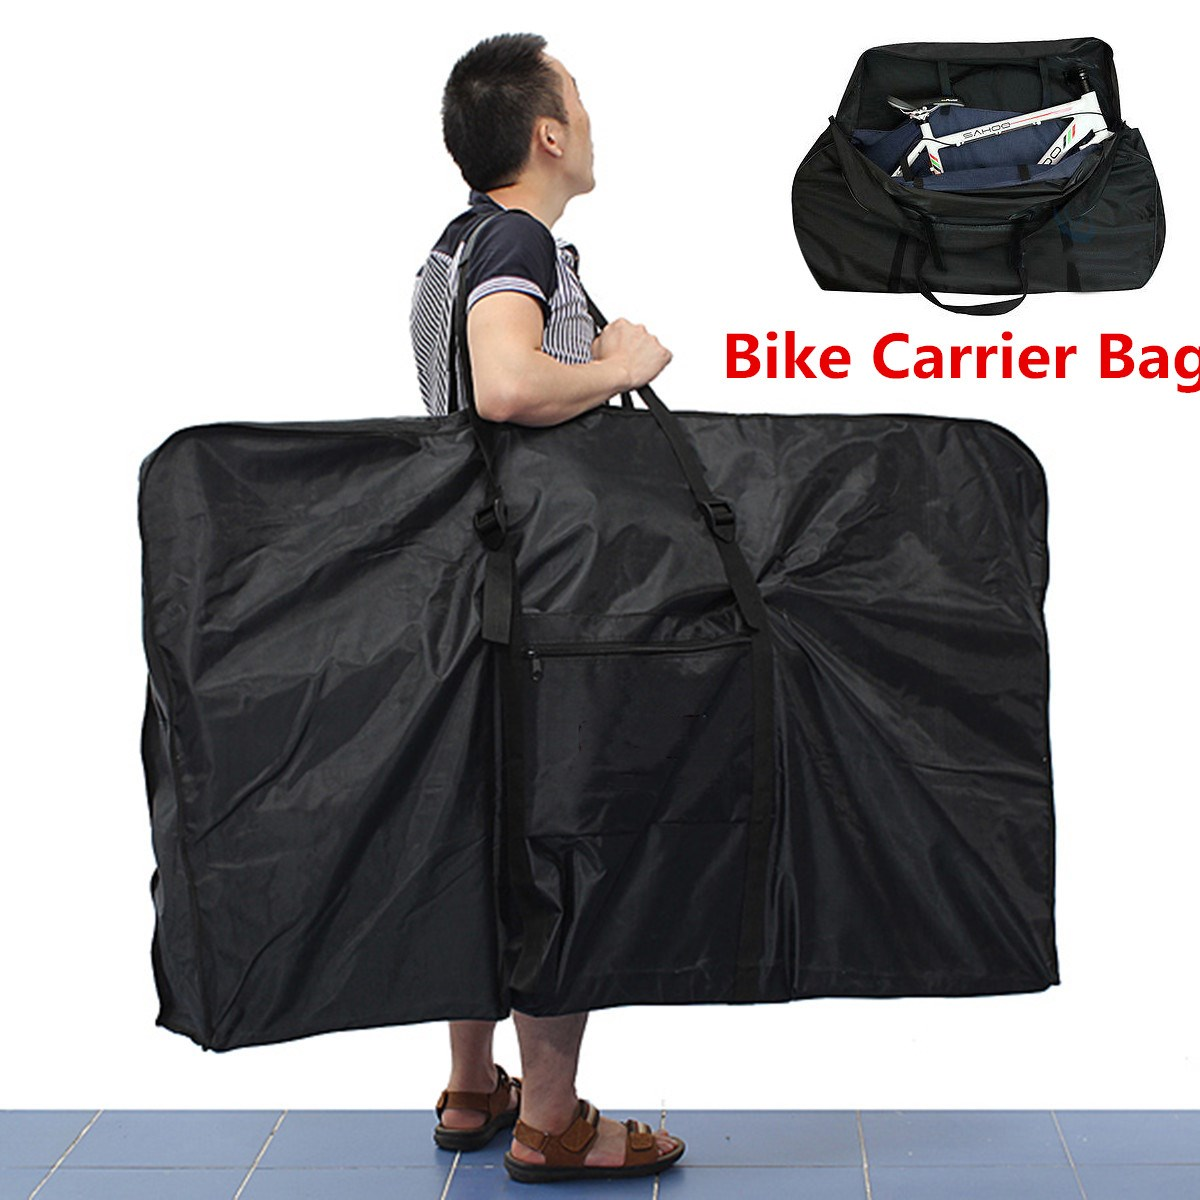 26 Big Folding Bike Carrier Carry Packing Bag Foldable Bicycle Transport Bag Waterproof Loading Vehicle Pouch26 Big Folding Bike Carrier Carry Packing Bag Foldable Bicycle Transport Bag Waterproof Loading Vehicle Pouch